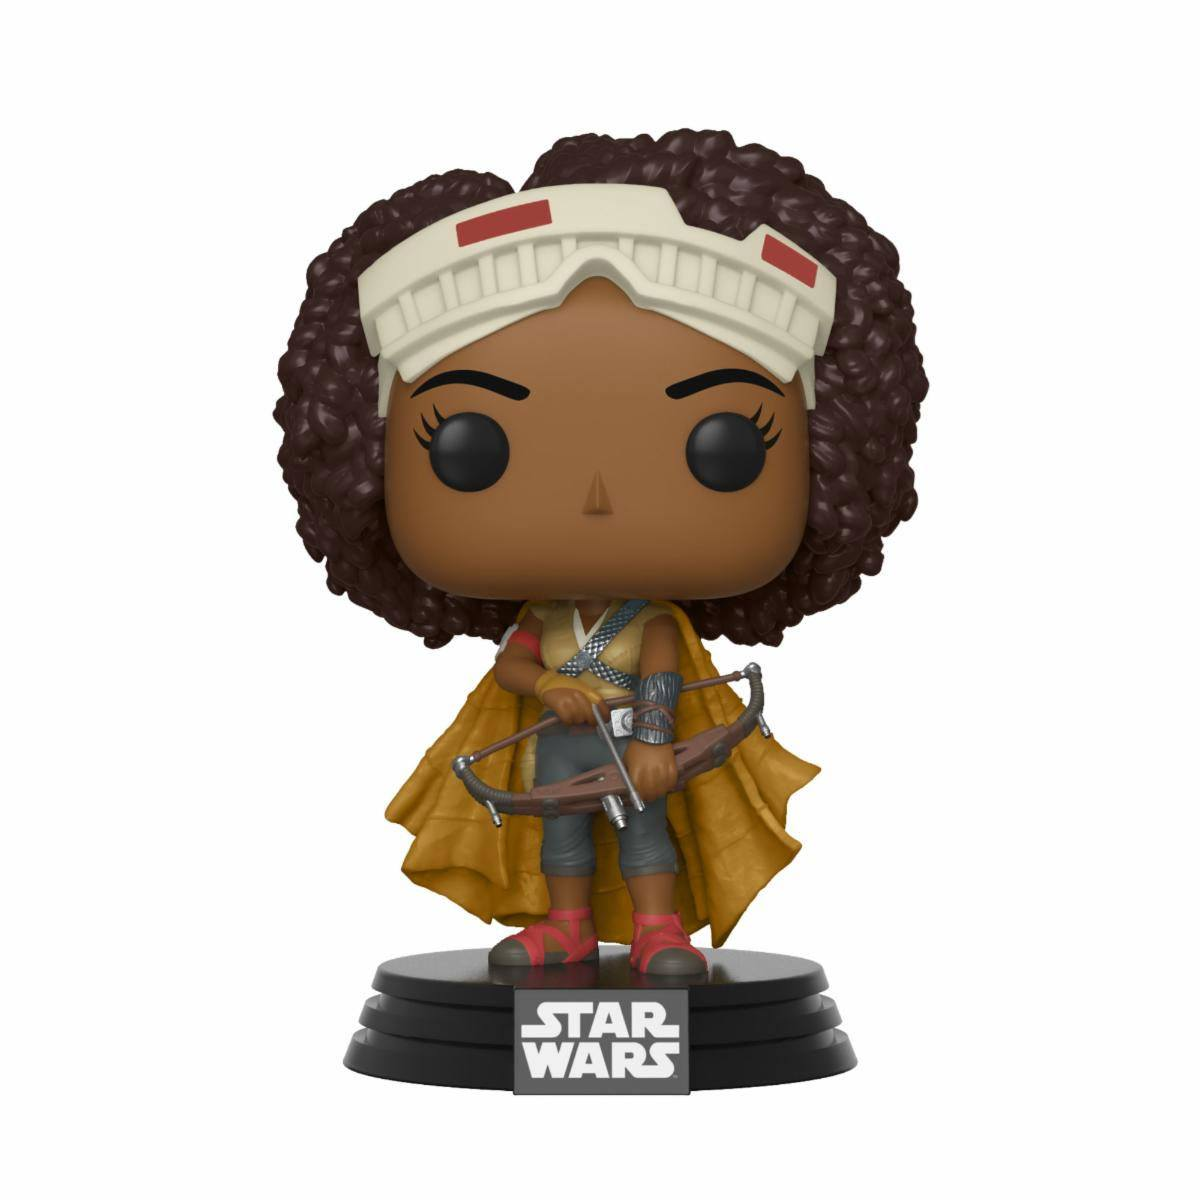 Star Wars Episode IX POP! - figúrka Jannah 9 cm